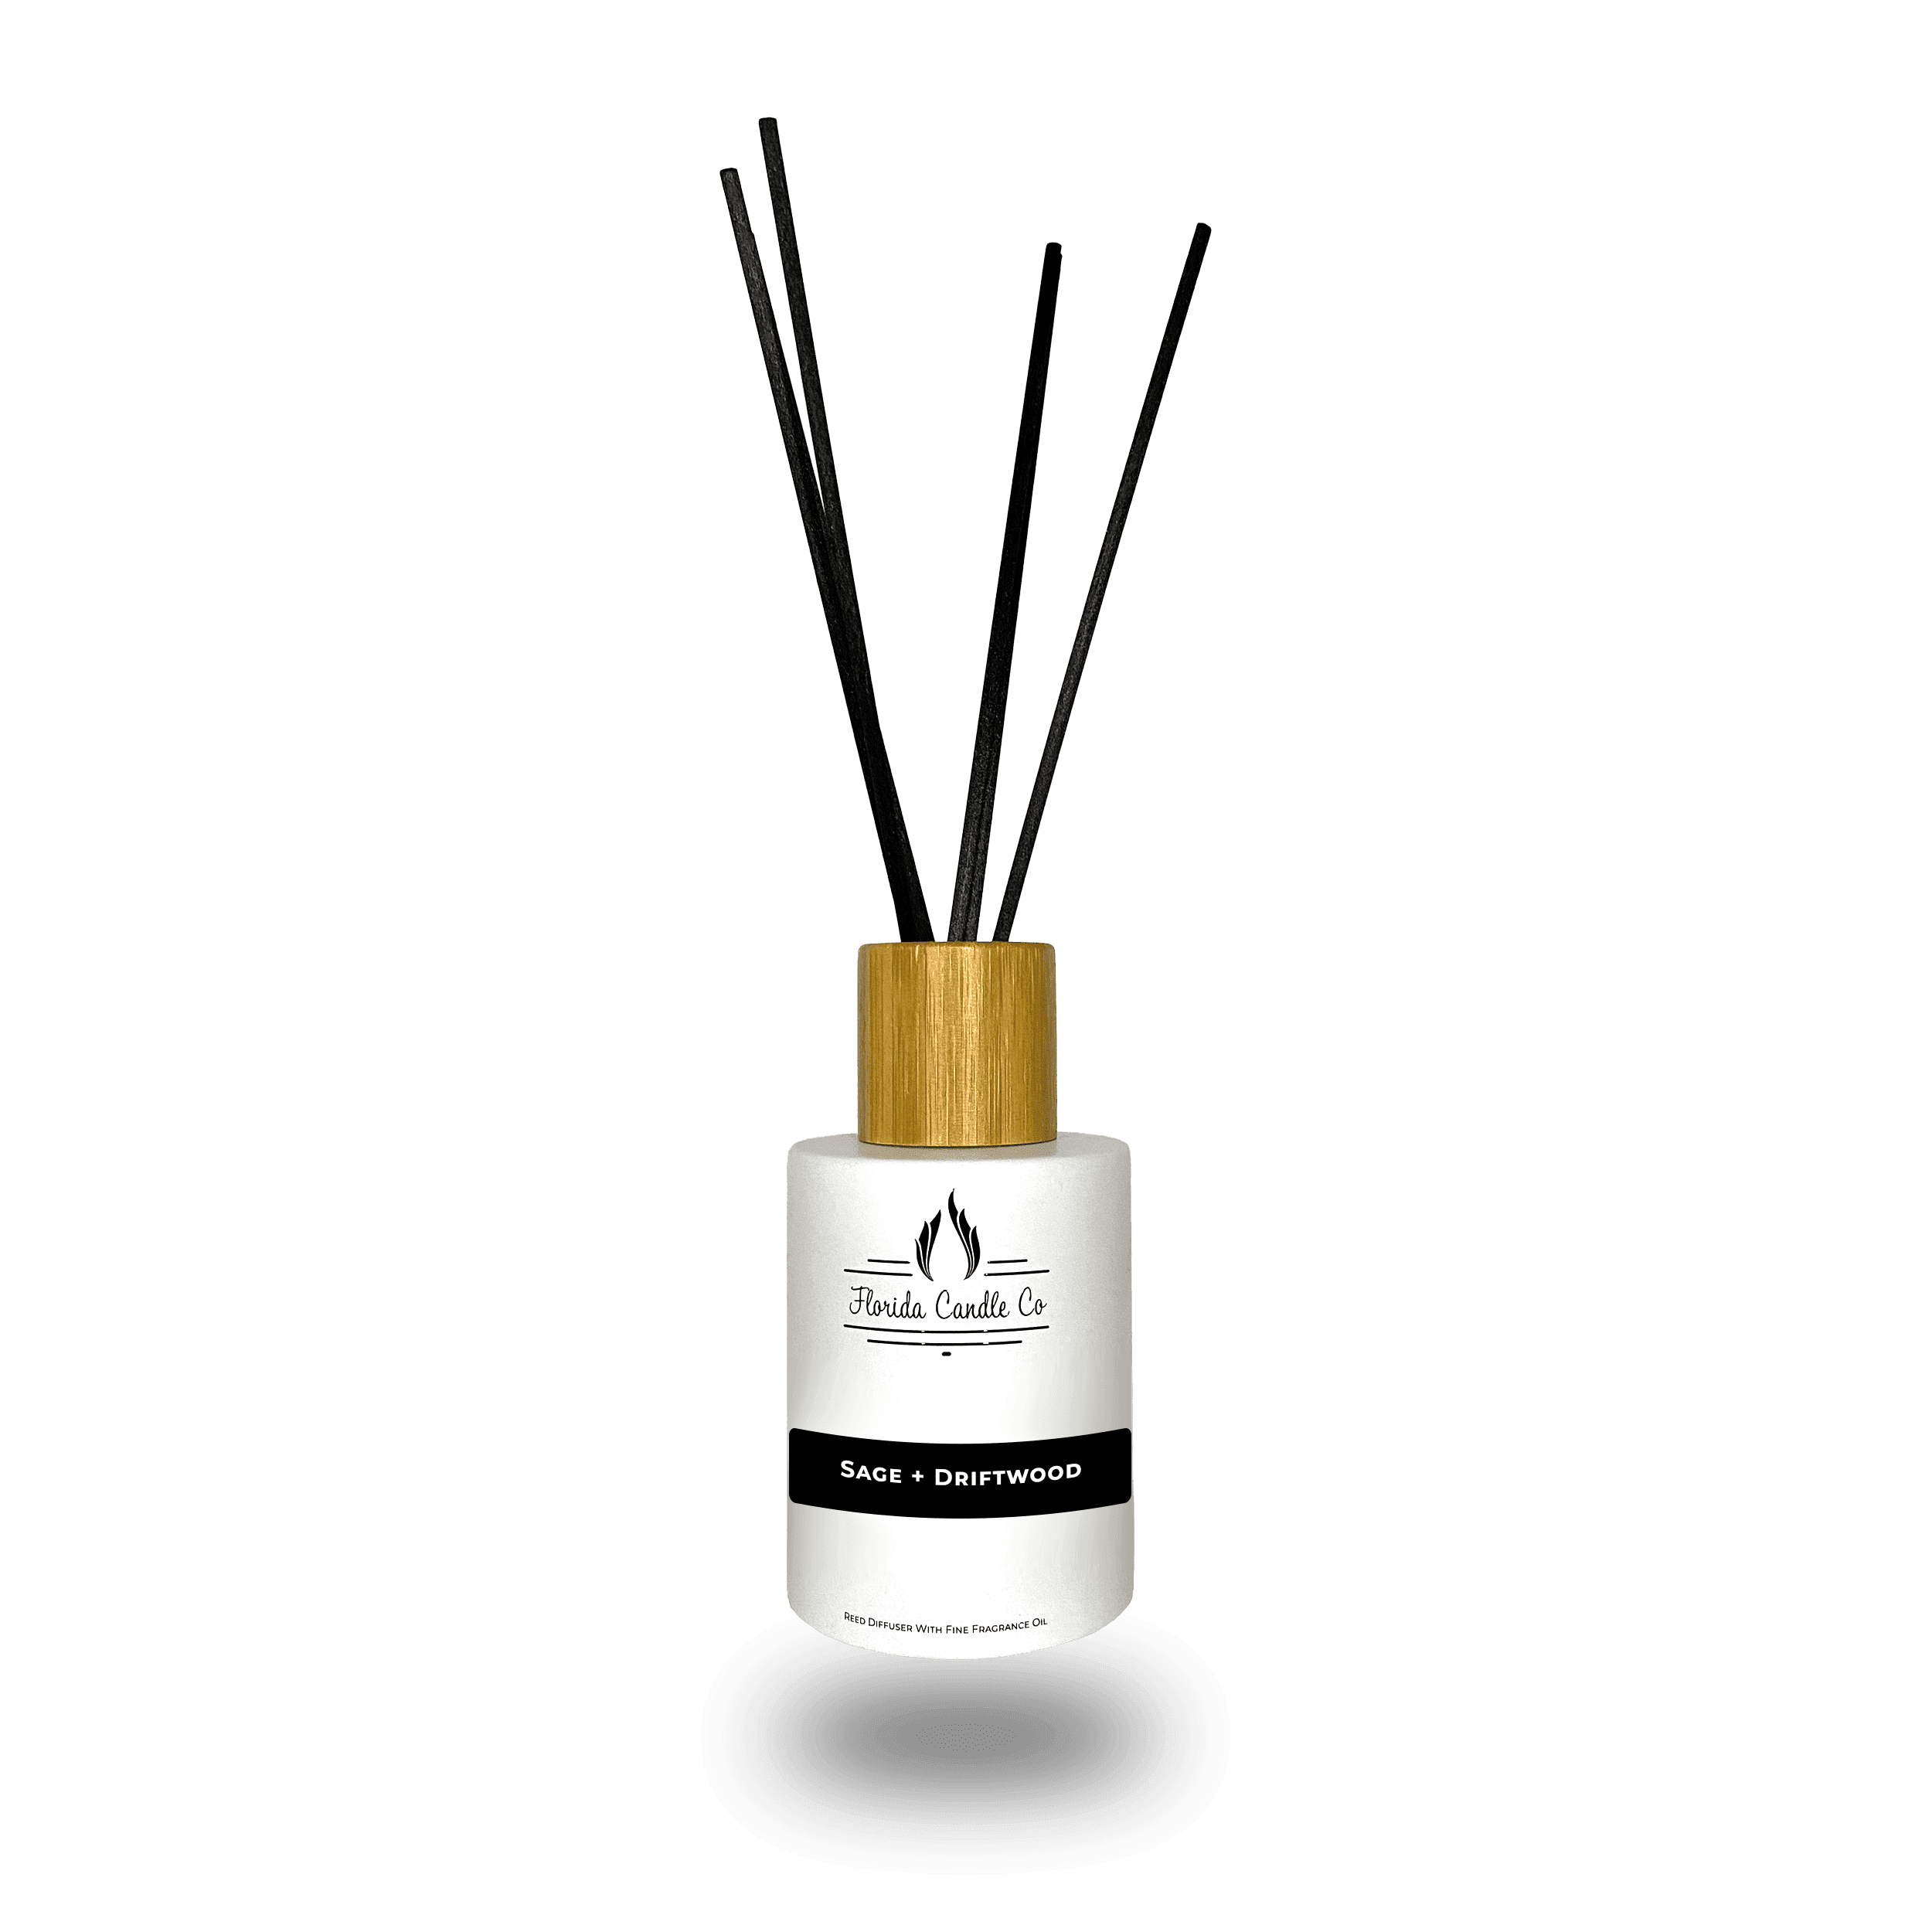 """Featured image for """"Sage + Driftwood Reed Diffuser"""""""